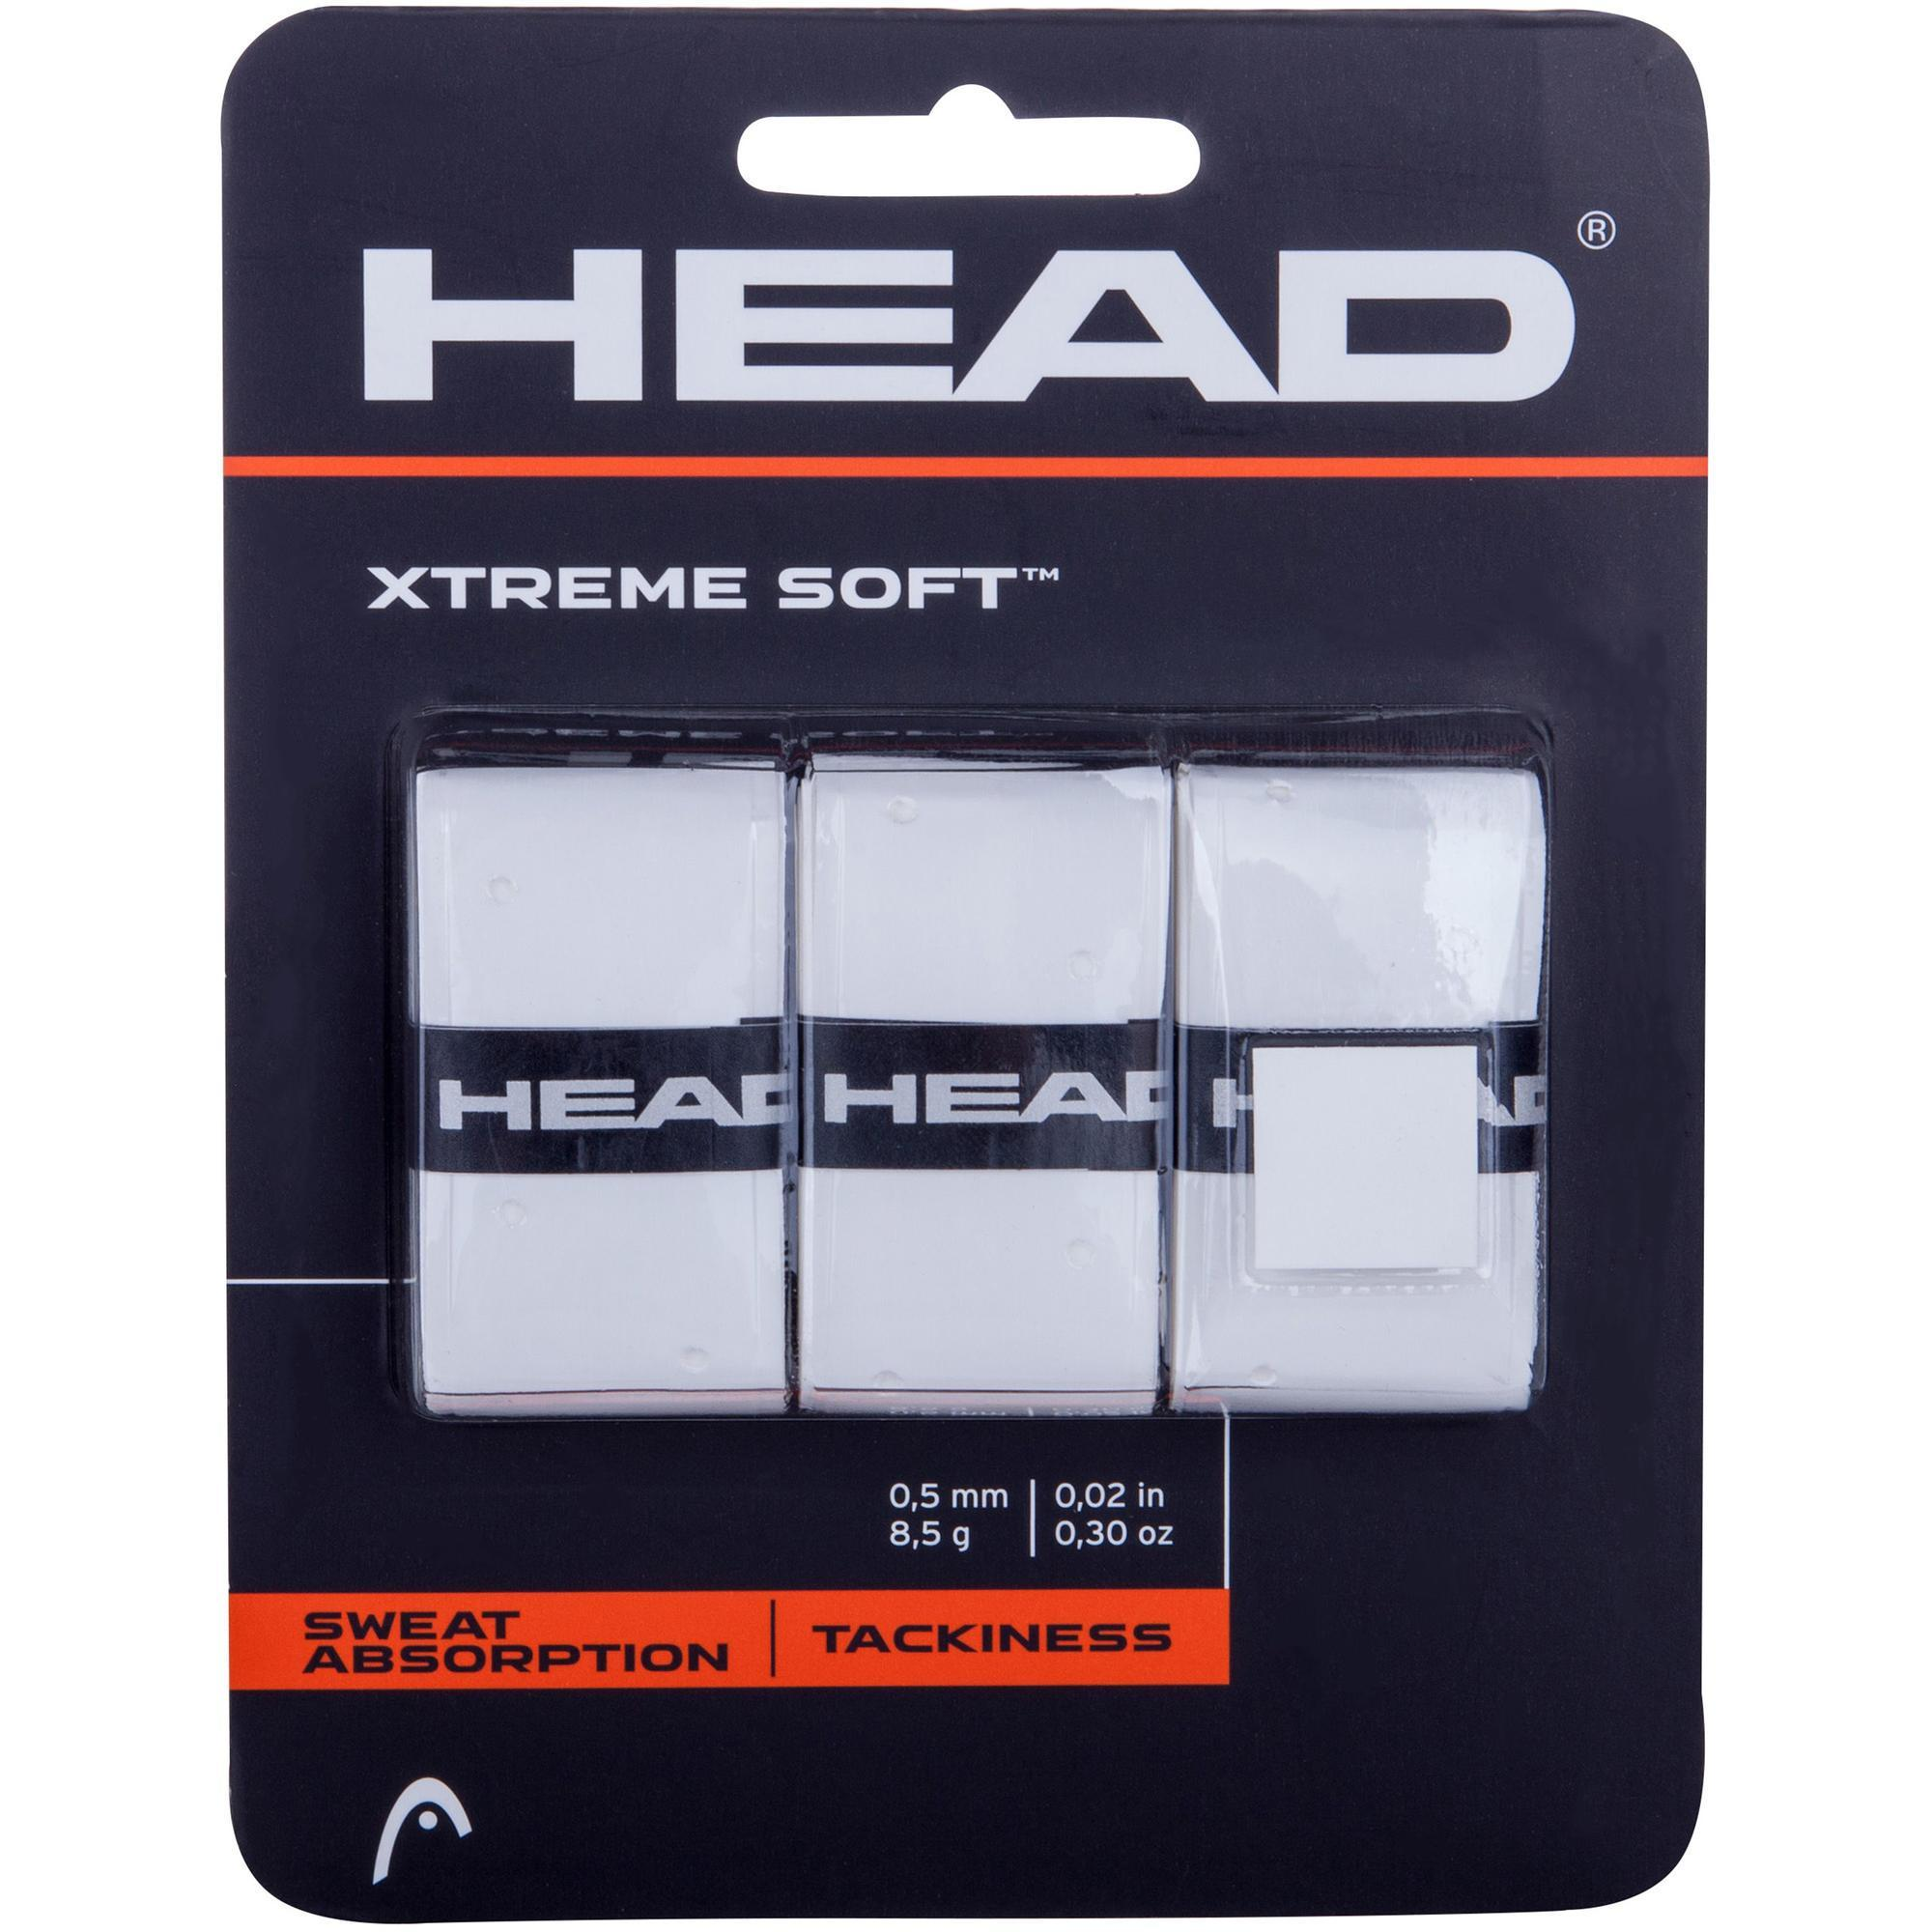 2 Pack Tennis Grips Overgrip Grip Head Xtreme Soft 10